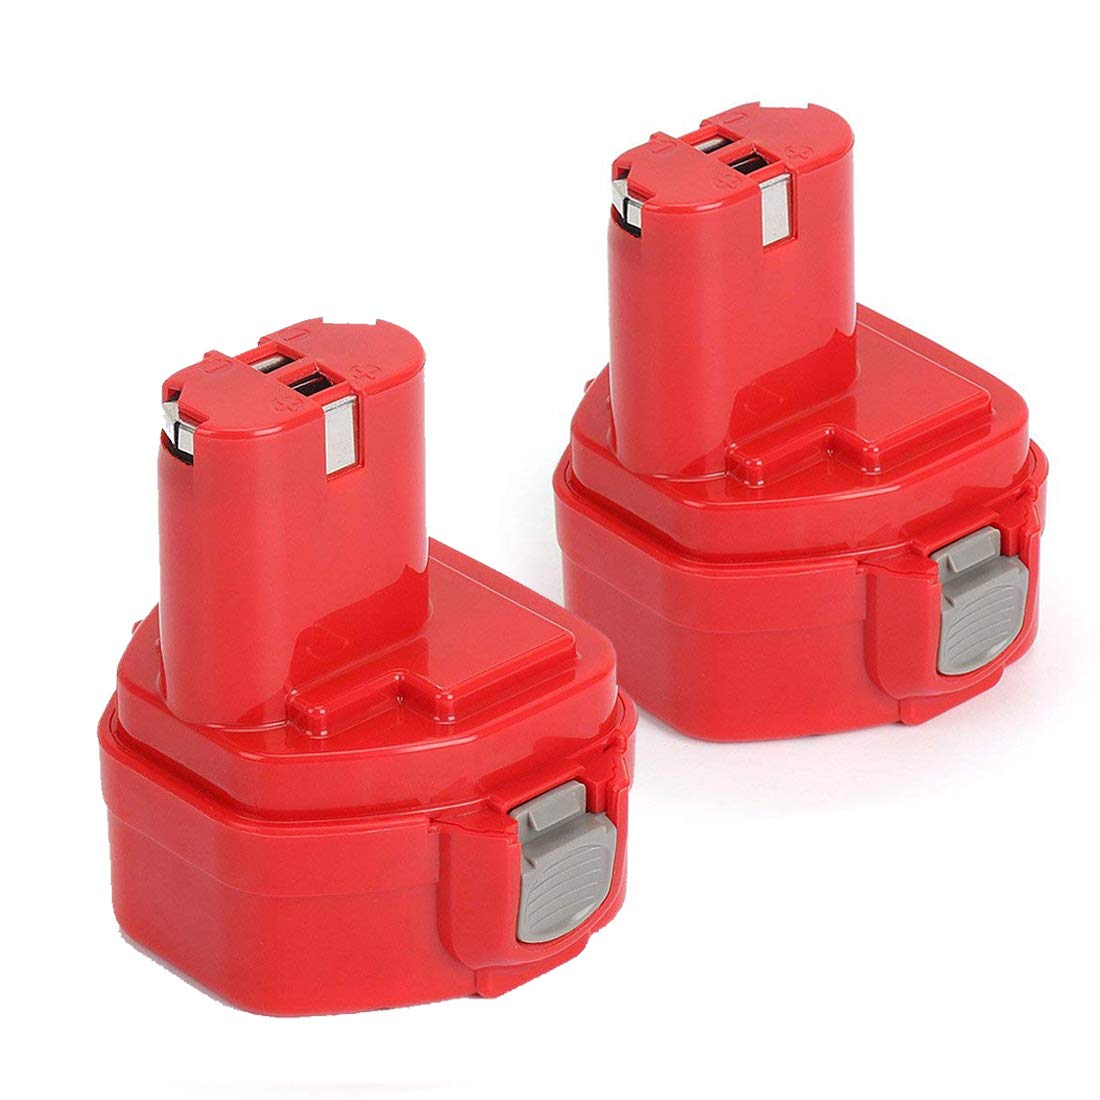 REEXBON 1222 12V 2.0Ah Battery Replacement for Makita 1220 1222 1233 1234 1235 192598-2 PA12 12-Volt NiCd Cordless Power Tools Battery